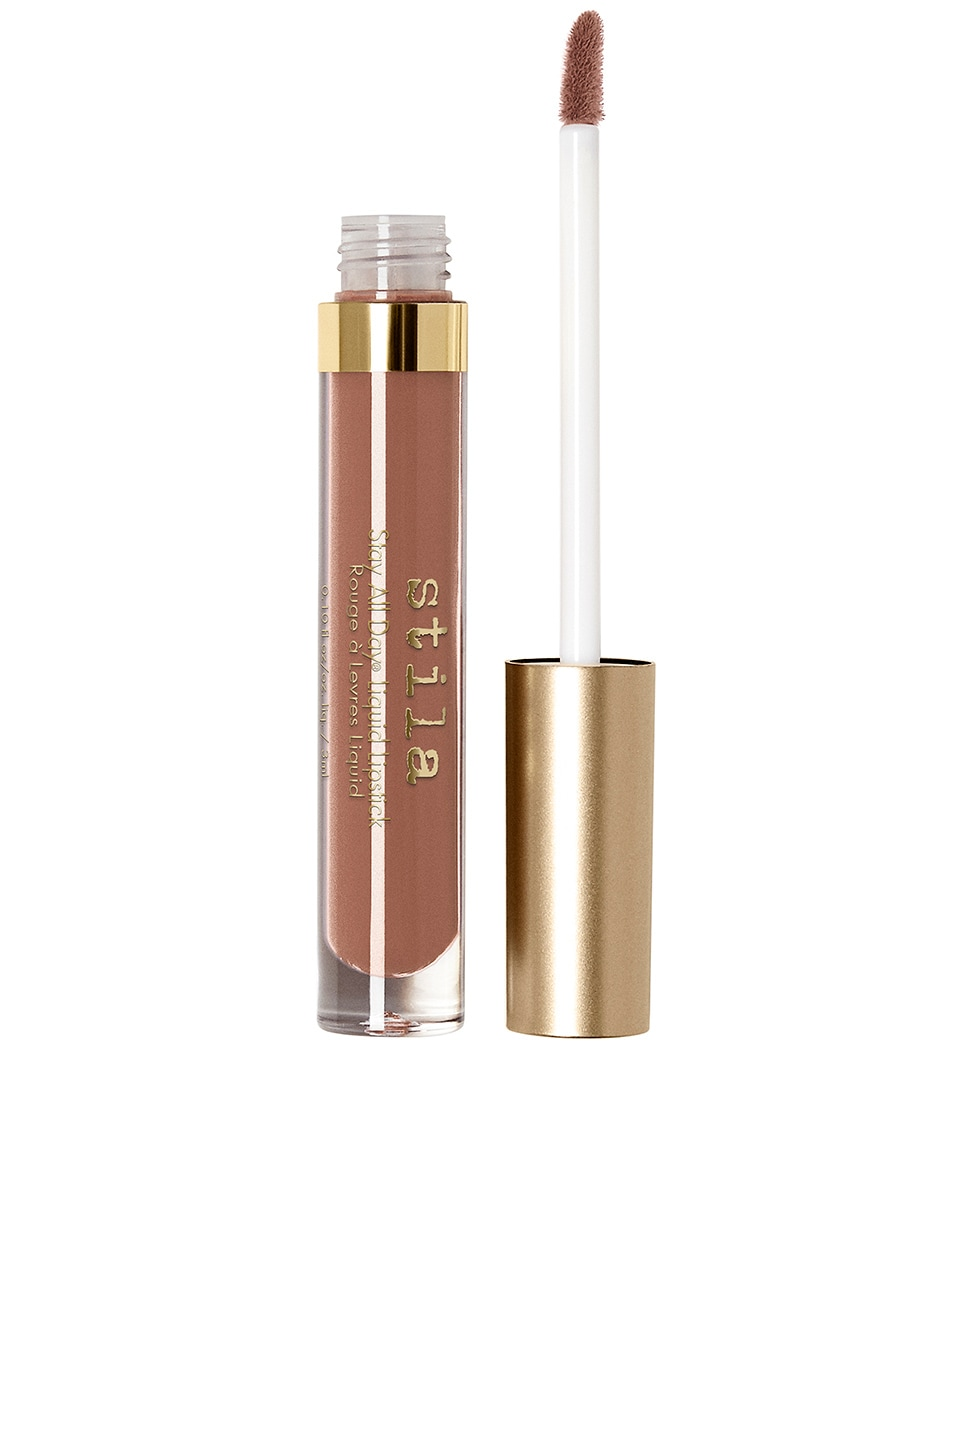 Stila Stay All Day Liquid Lipstick in Fia